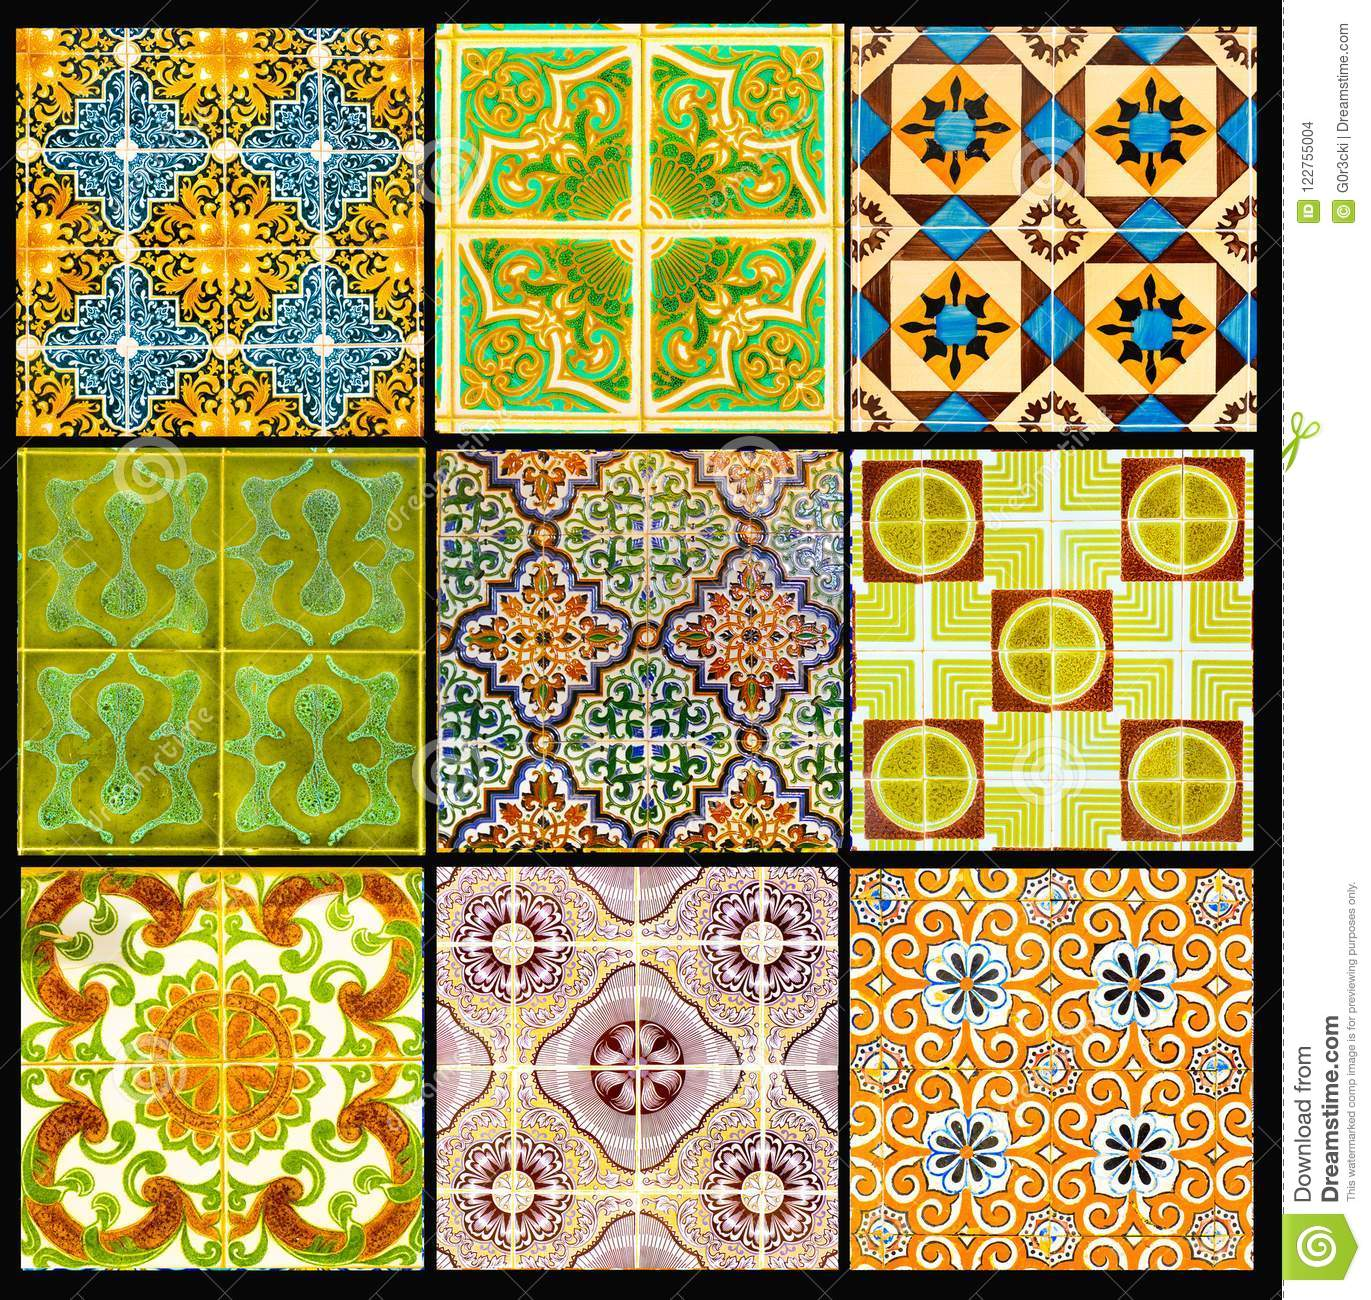 Portuguese Tiles with Retro Geometrical Pattern, Glazed Handmade Azulejos, Portugal Street Art, Patchwork